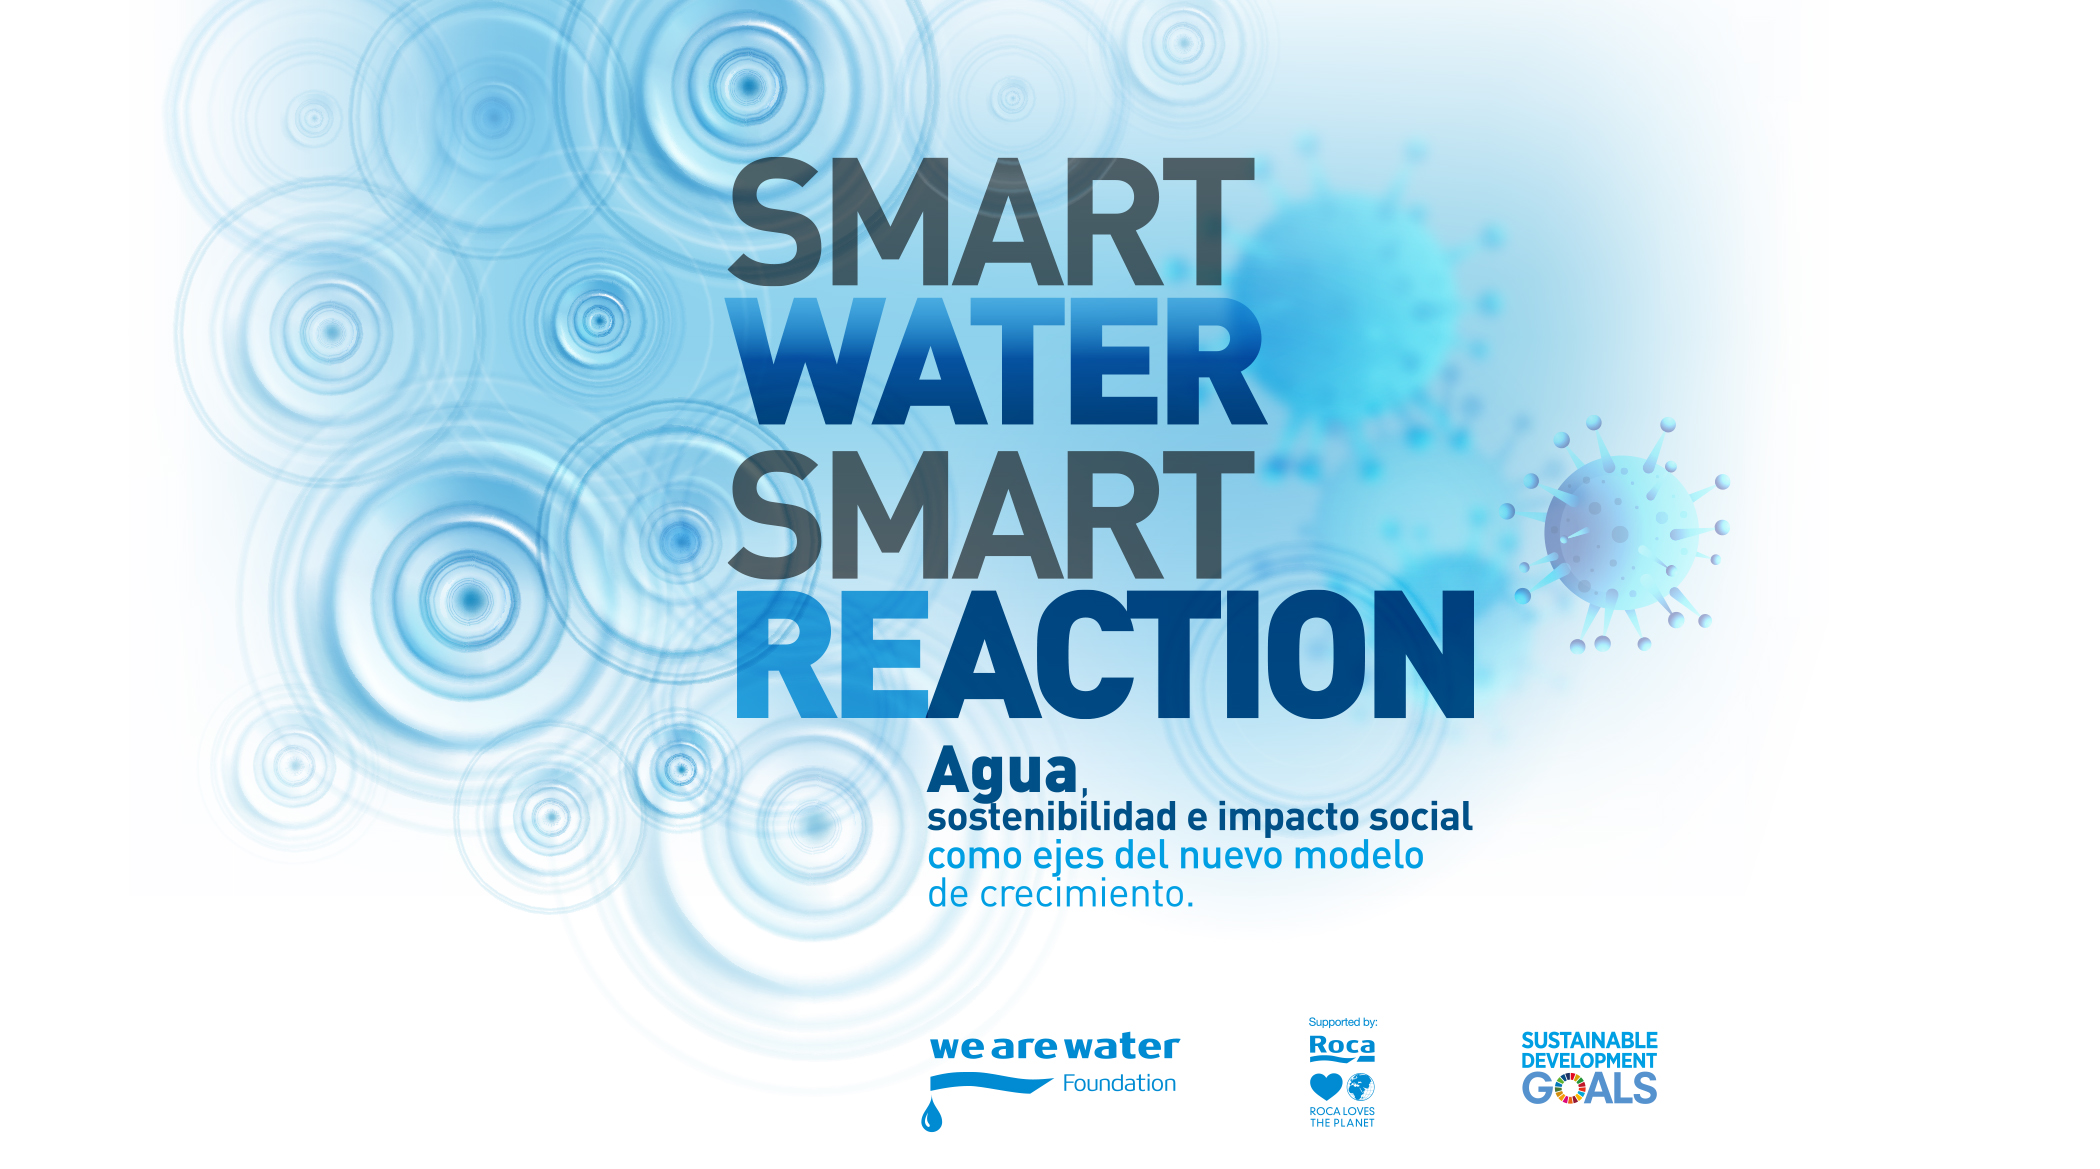 smart water, smart reaction logos